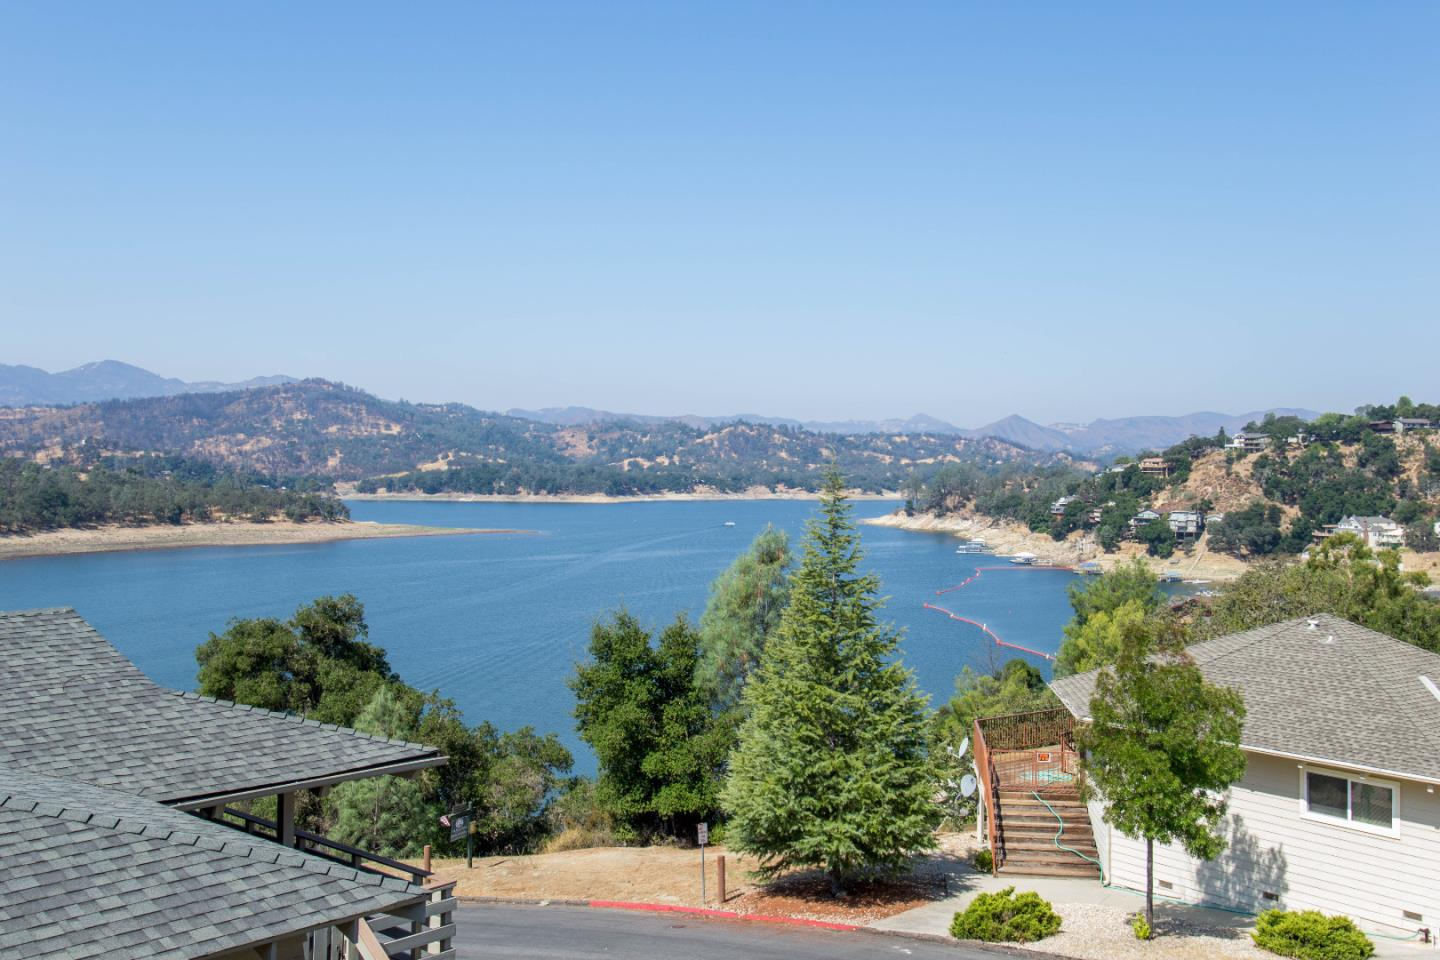 Single Family Home for Sale at 8132 Smith Point Road 8132 Smith Point Road Bradley, California 93426 United States